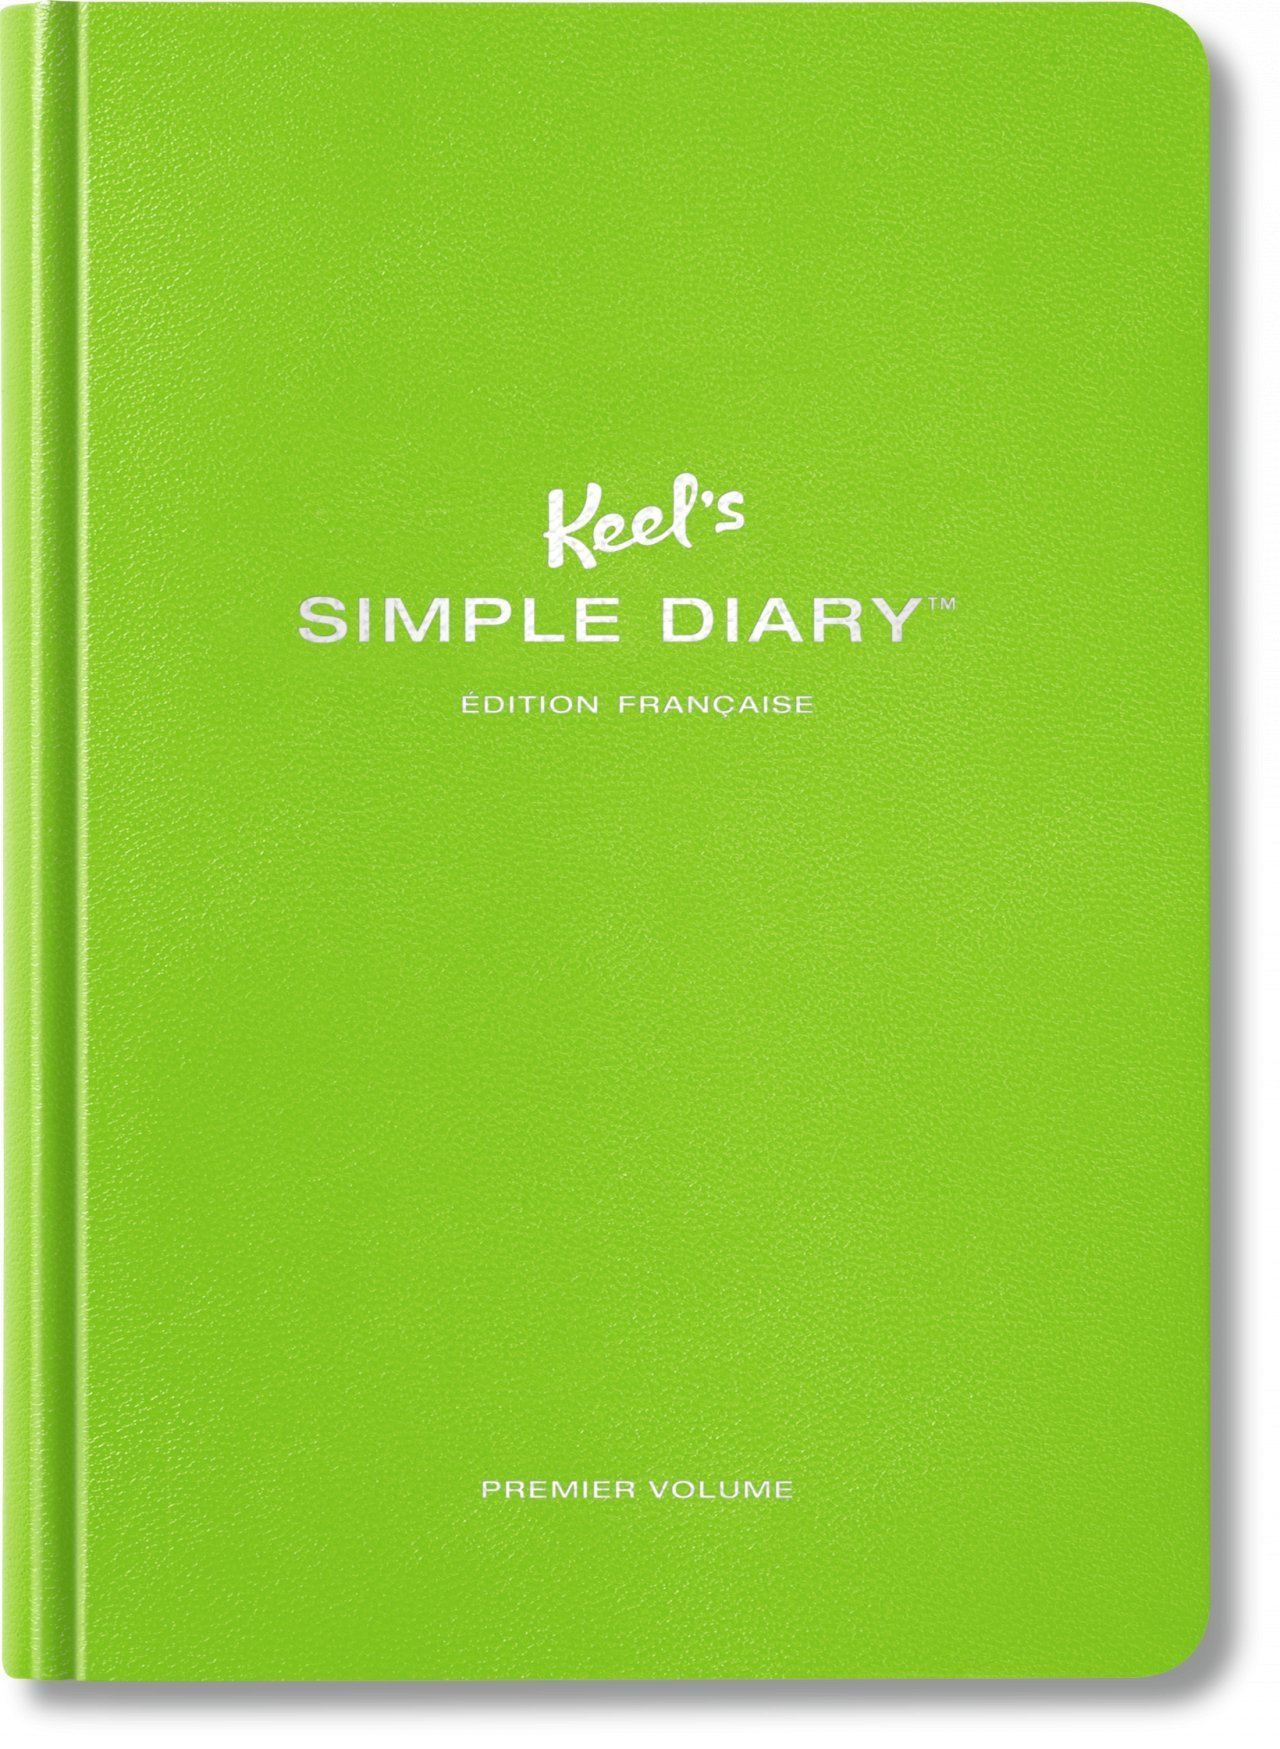 VA-KEEL SIMPLE DIARY I LEMON GREEN GB